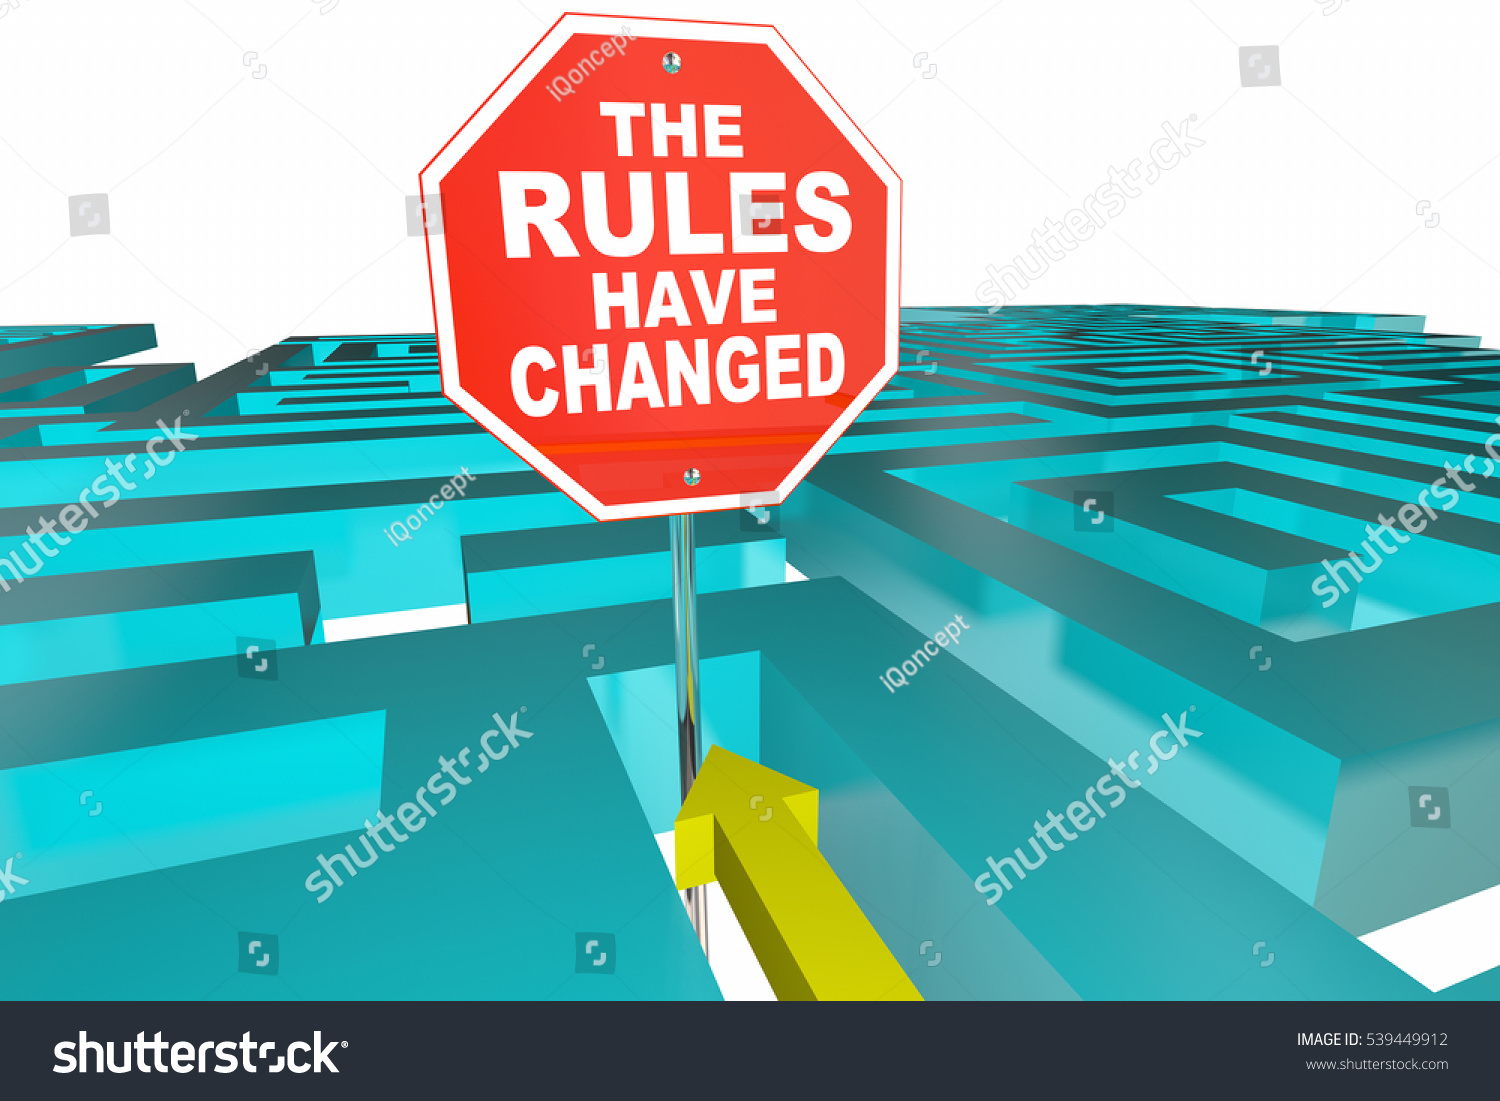 image The rules have changed